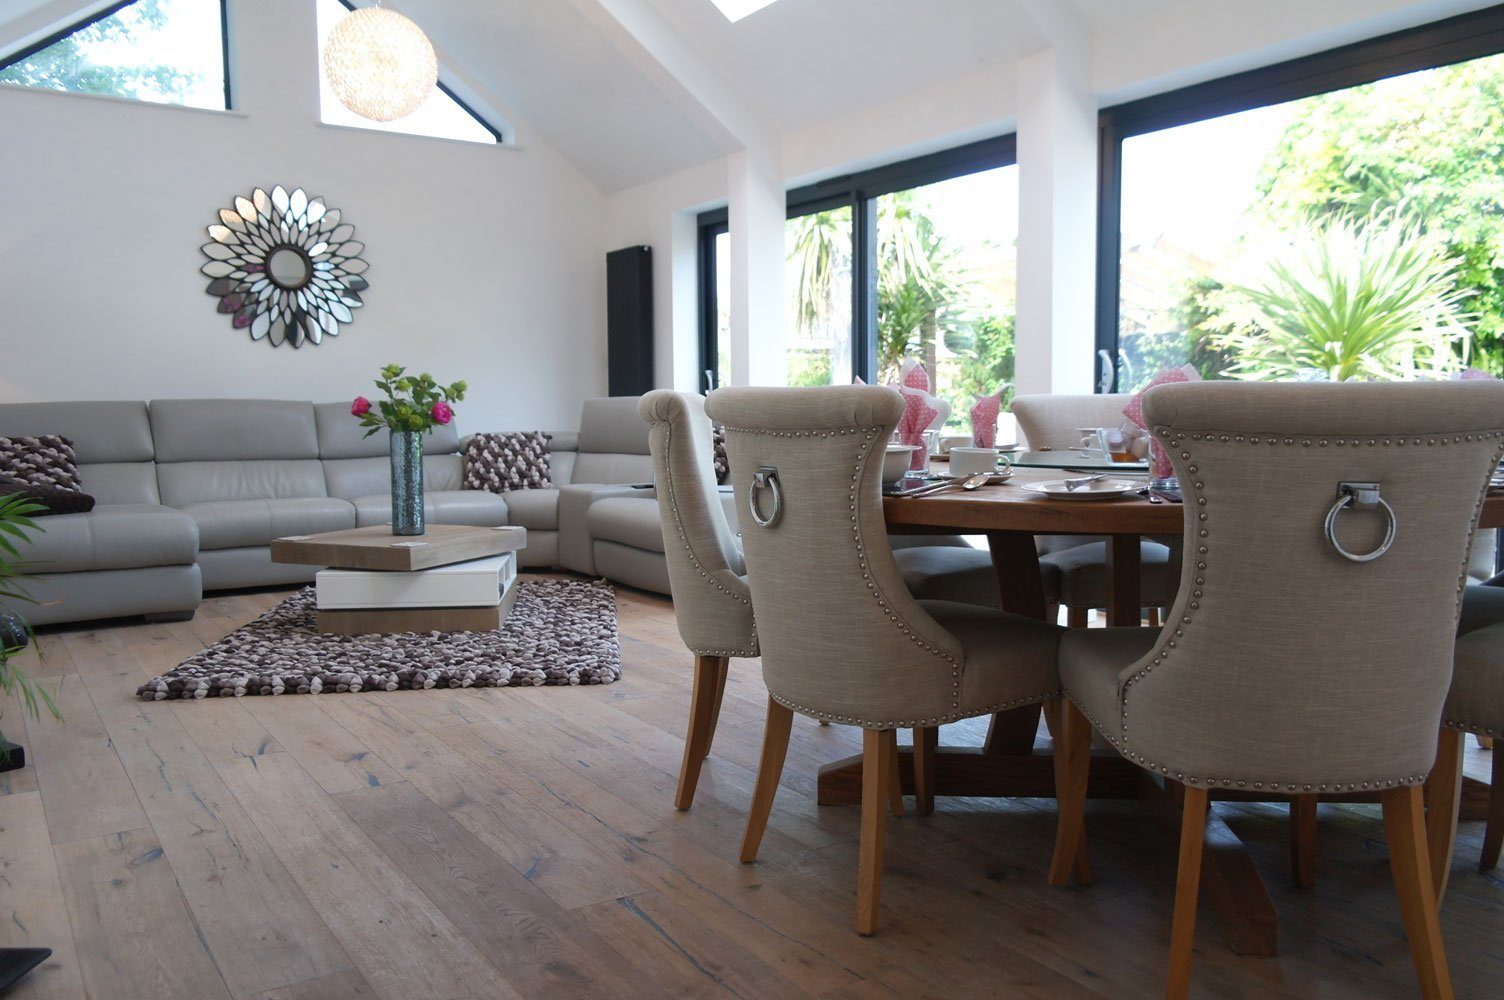 Comfortable rooms - Best Accommodation in Dorset for Family Holidays